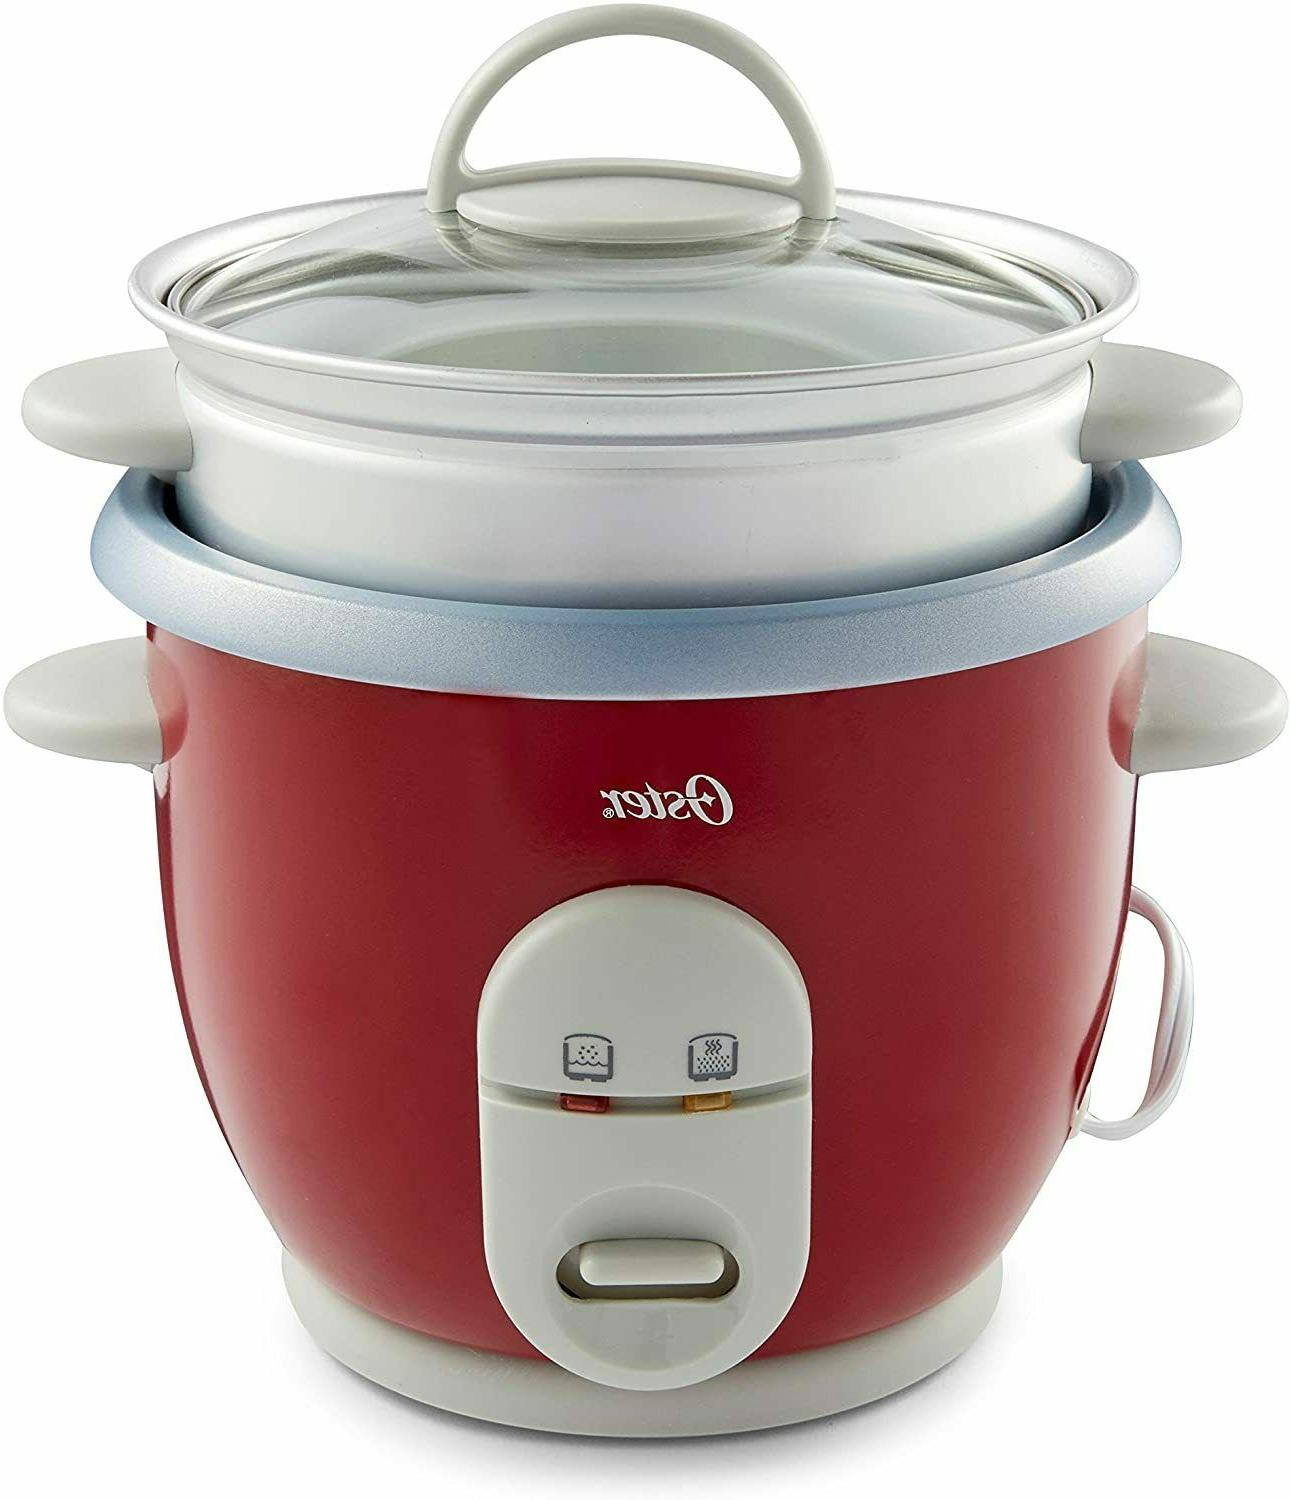 Rice 6 Cup Oster Steamer Non Pot Automatic Red